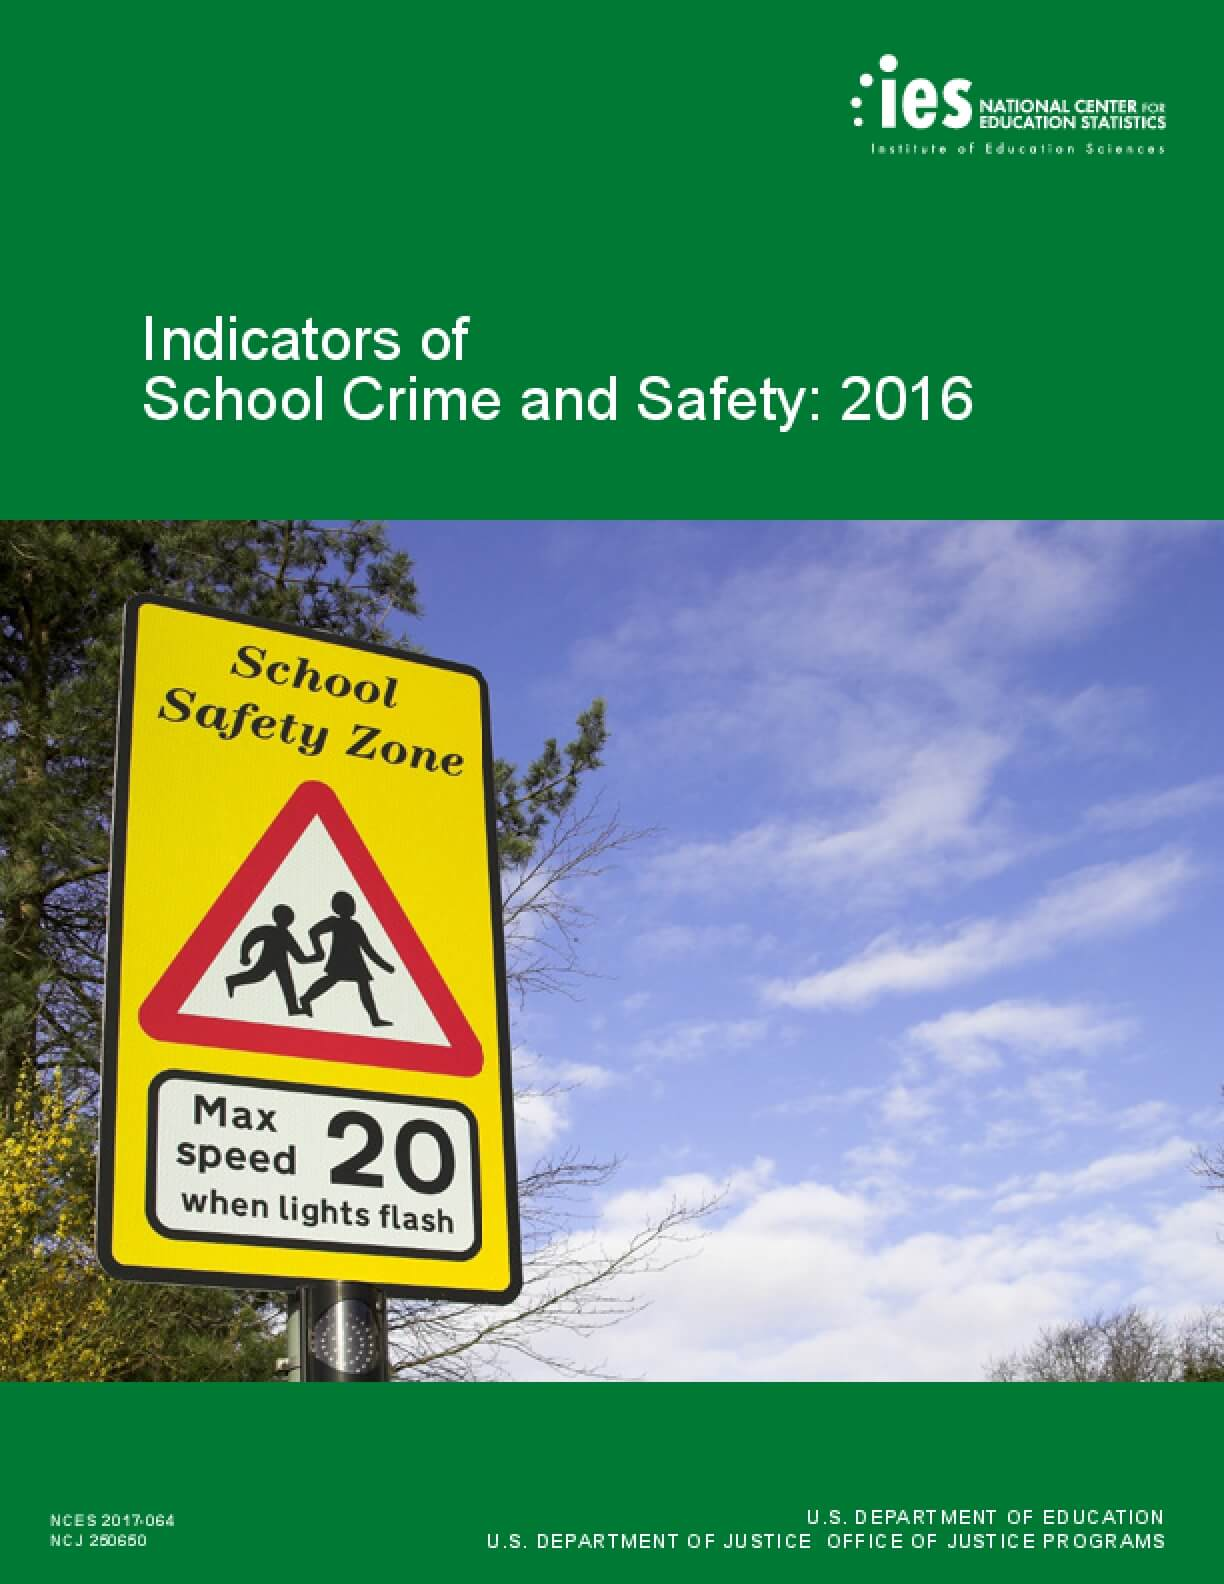 Indicators of School Crime and Safety: 2016